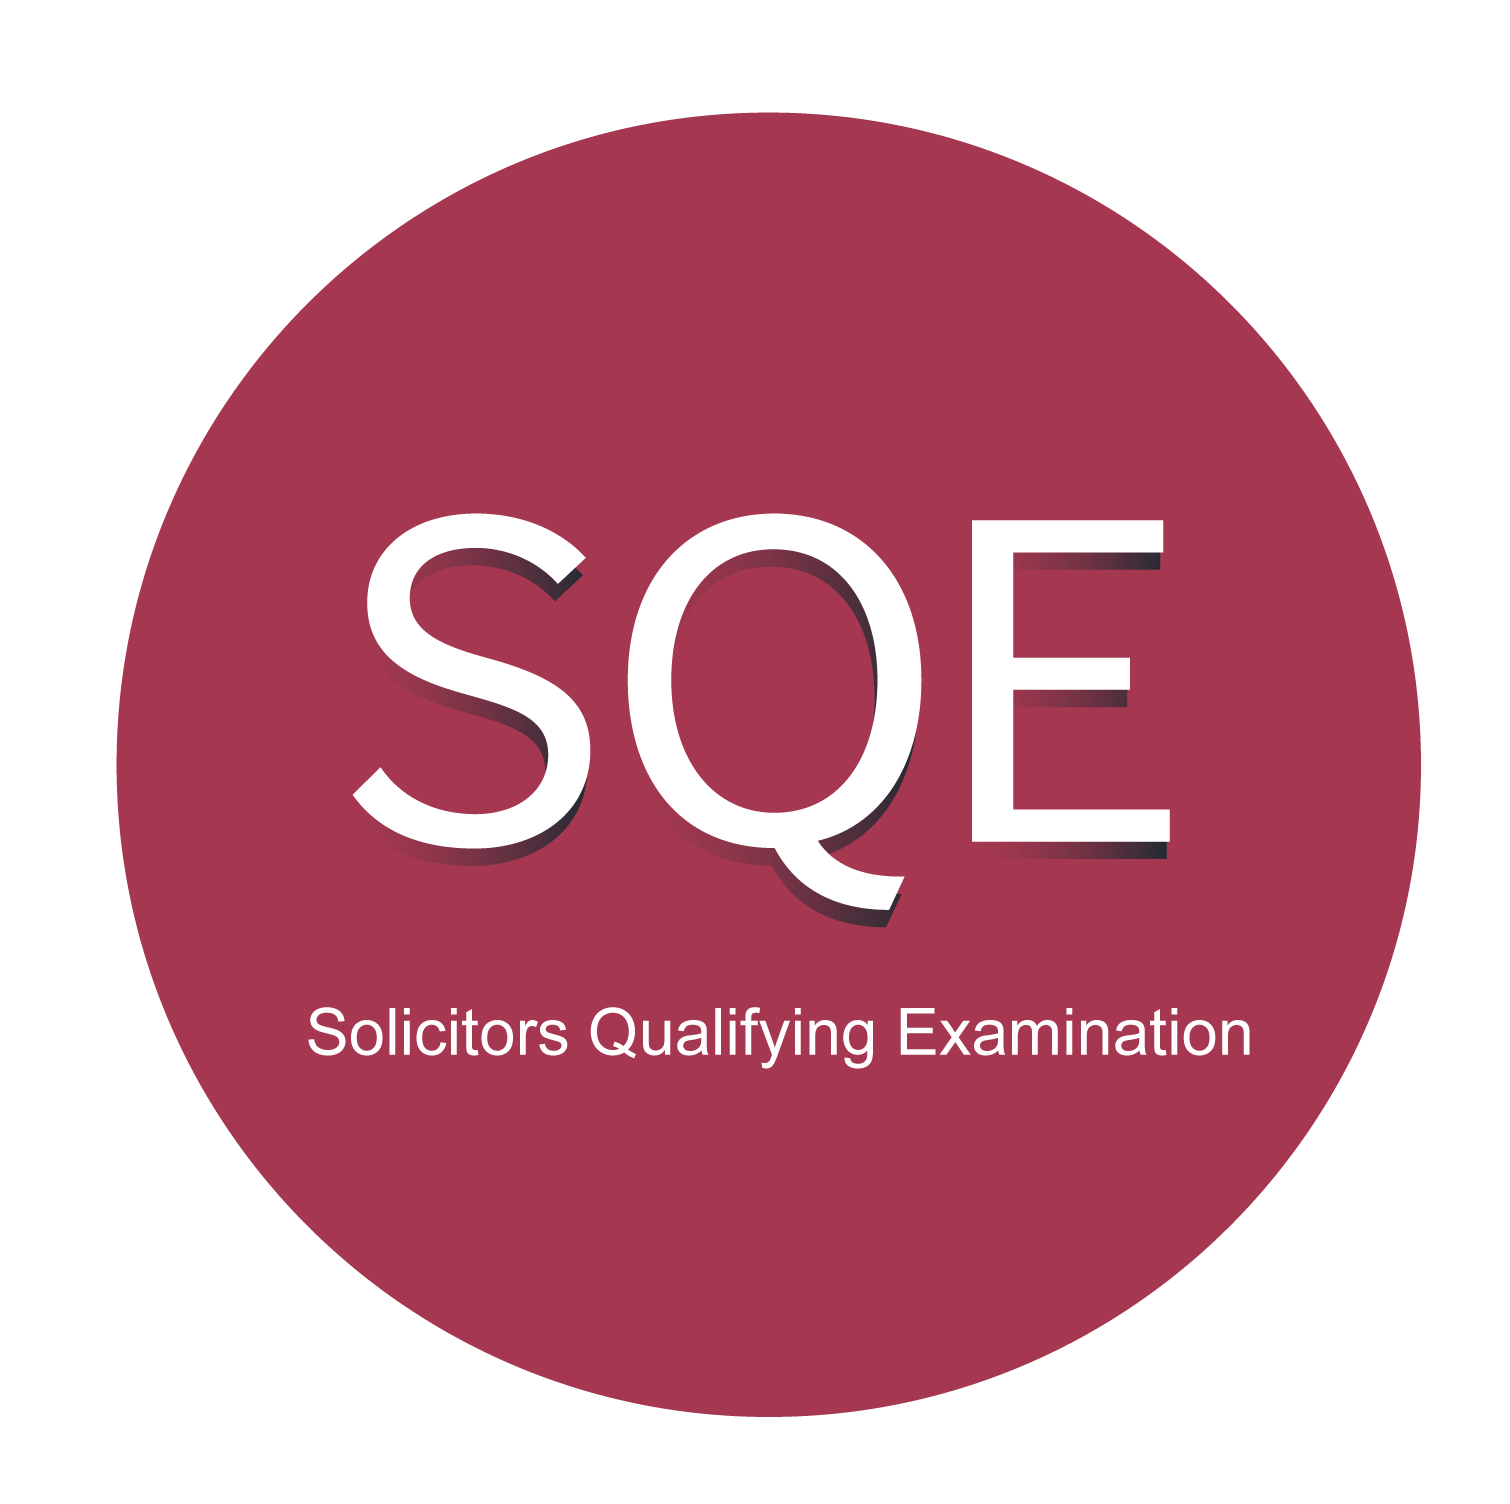 Implementing the SQE – some thoughts